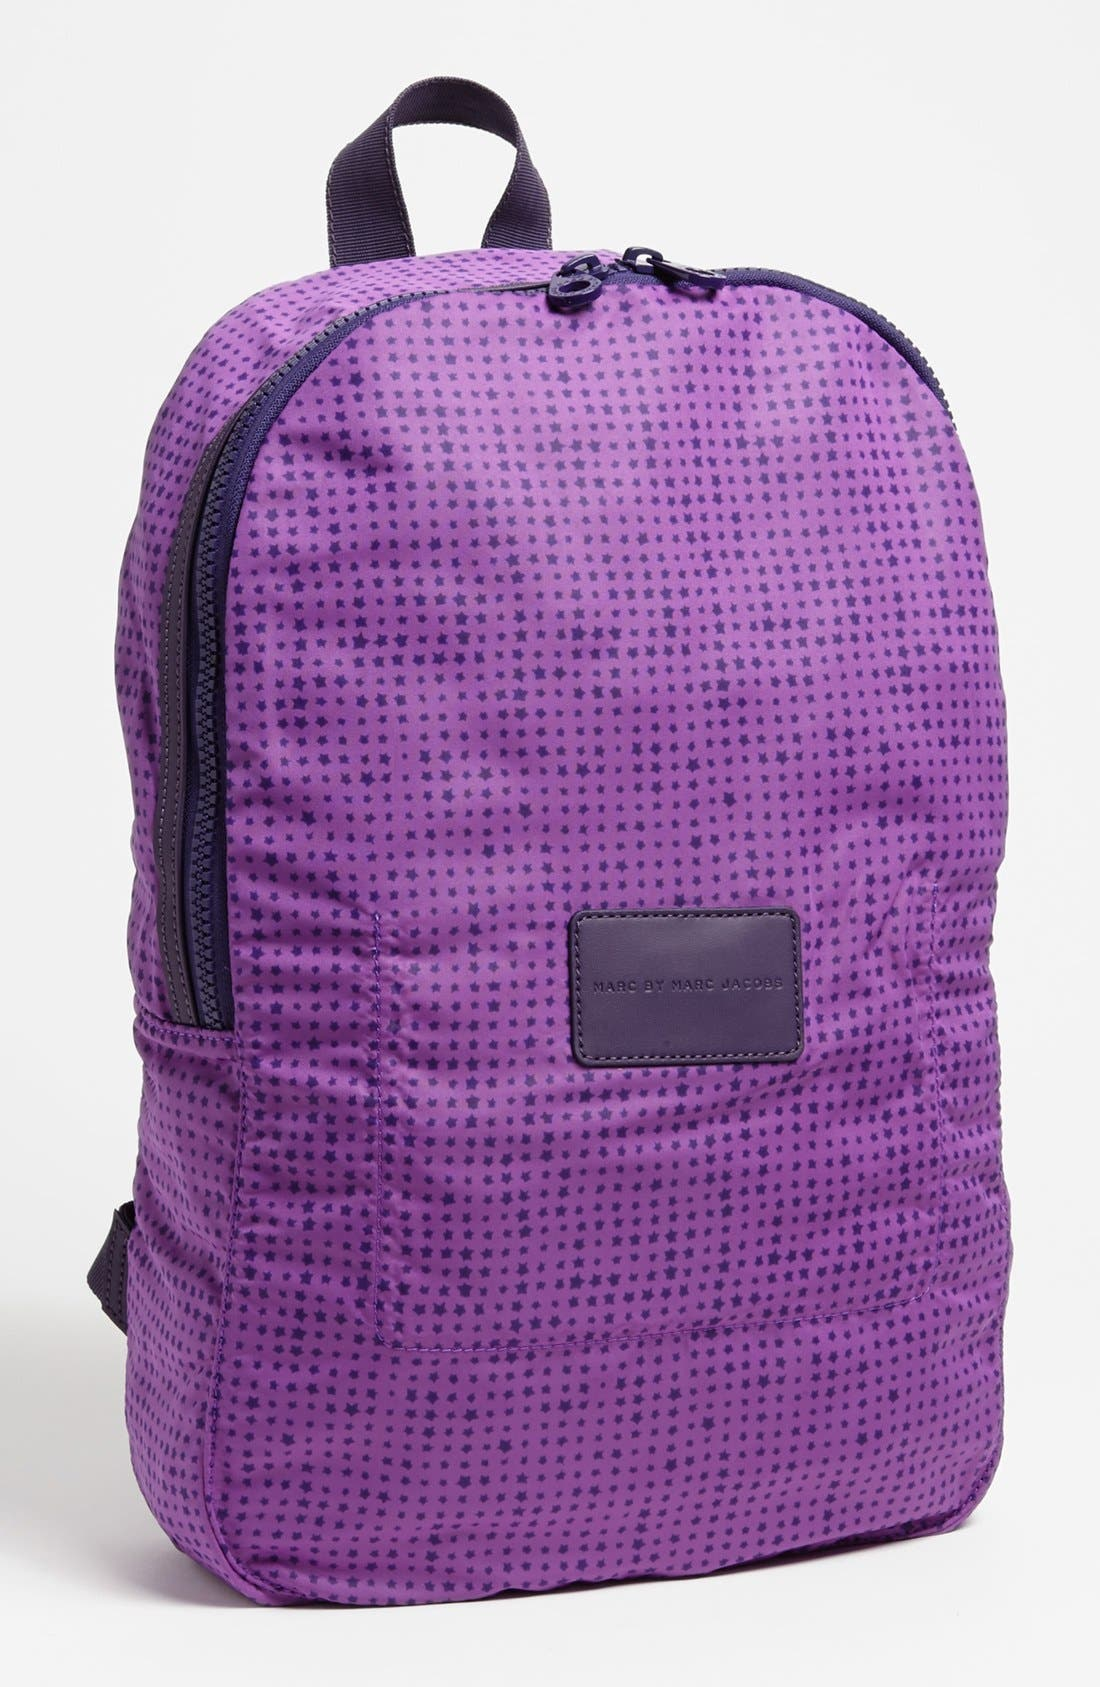 Main Image - MARC BY MARC JACOBS 'Reluctant Stars' Packable Backpack